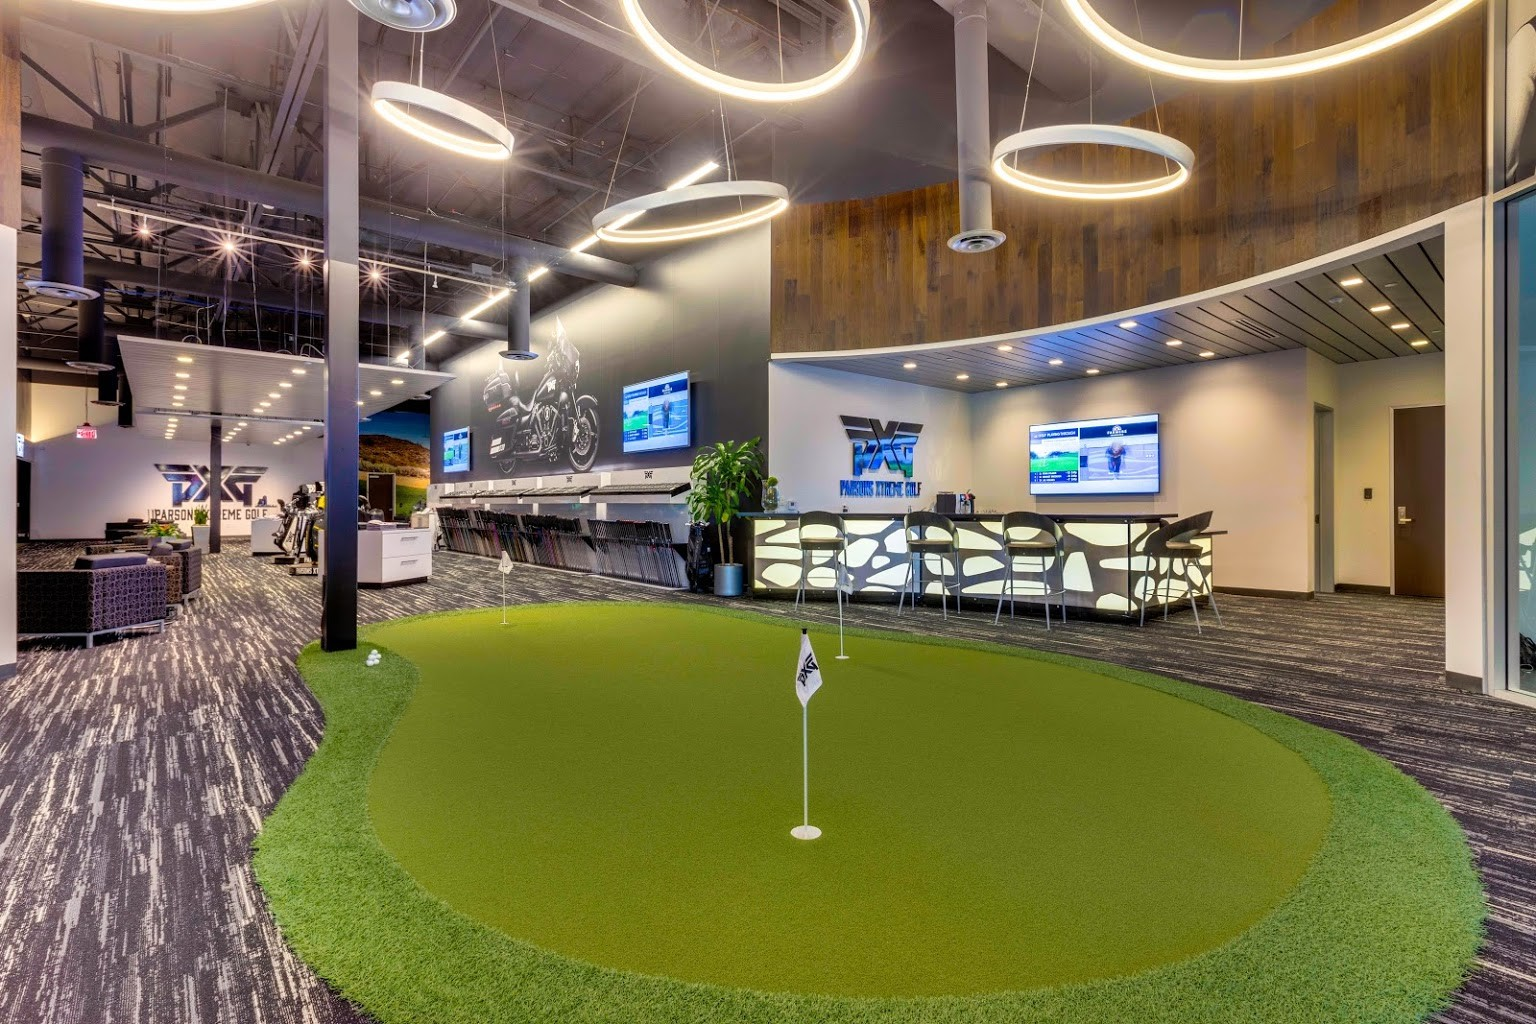 putting green at Parsons Xtreme Golf store PXG in Scottsdale, AZ